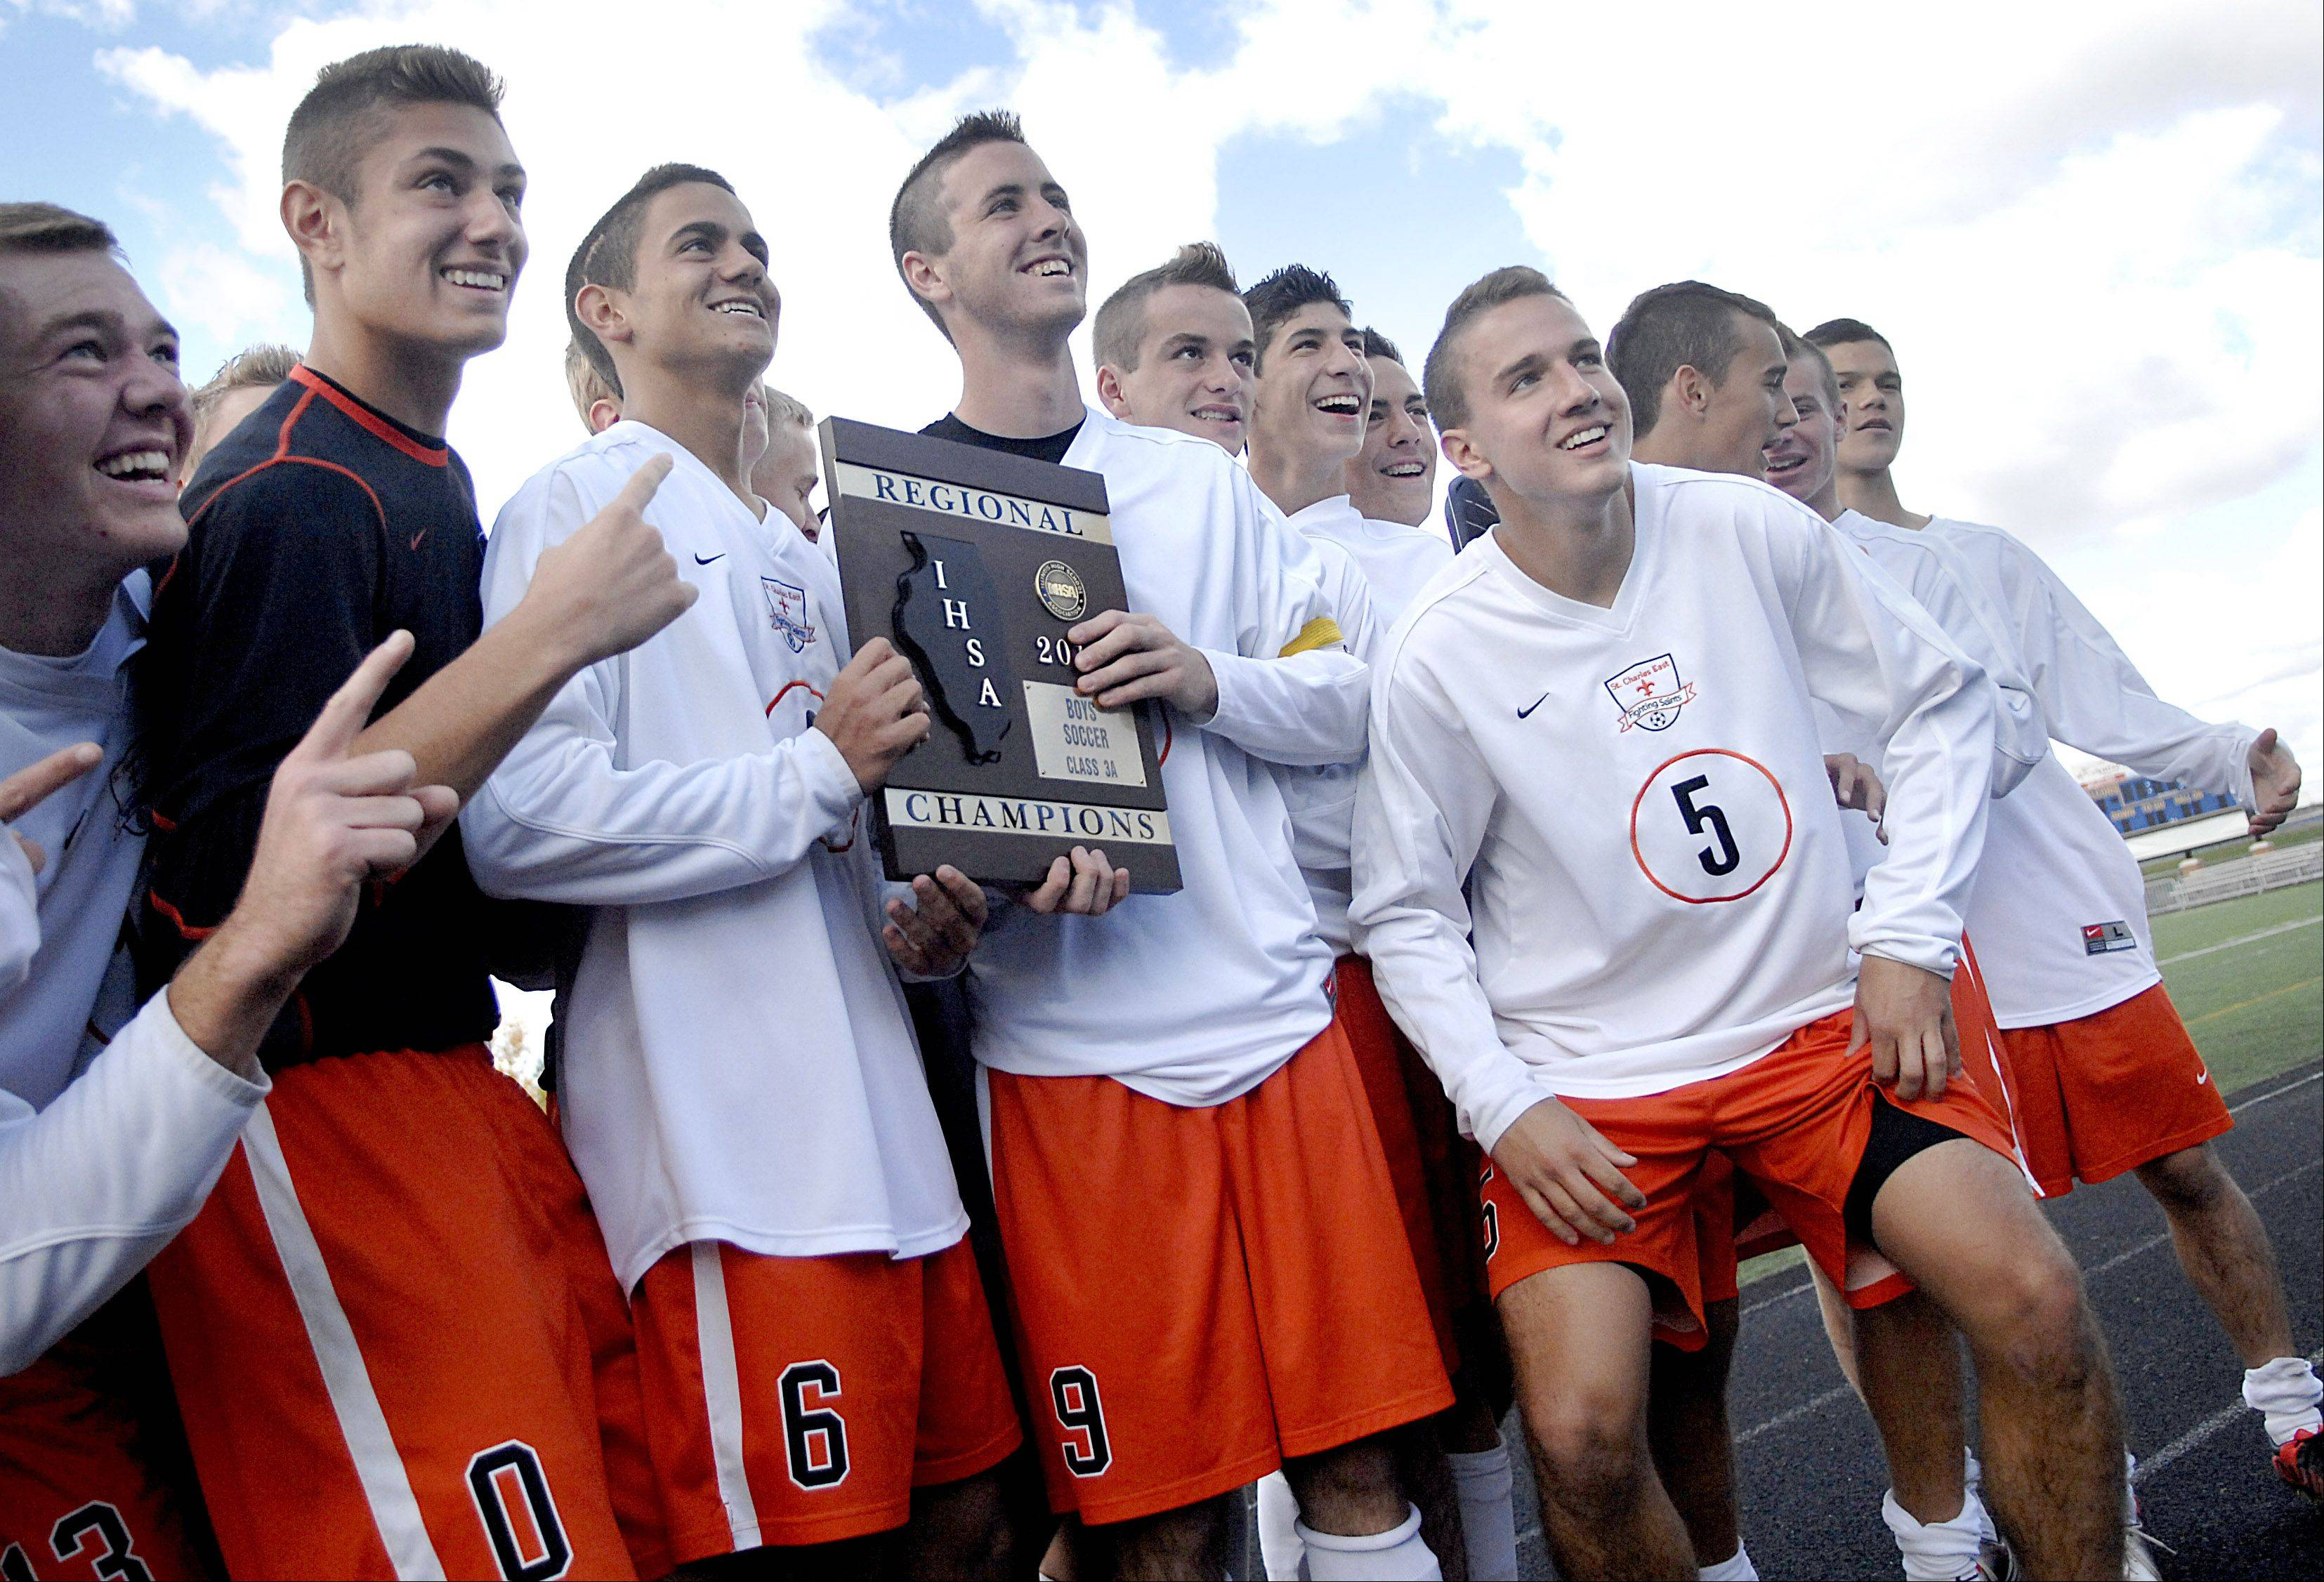 St. Charles East's Michael Macek and Brian Gielow show the Saints' regional plaque to their fans on Saturday, October 20.